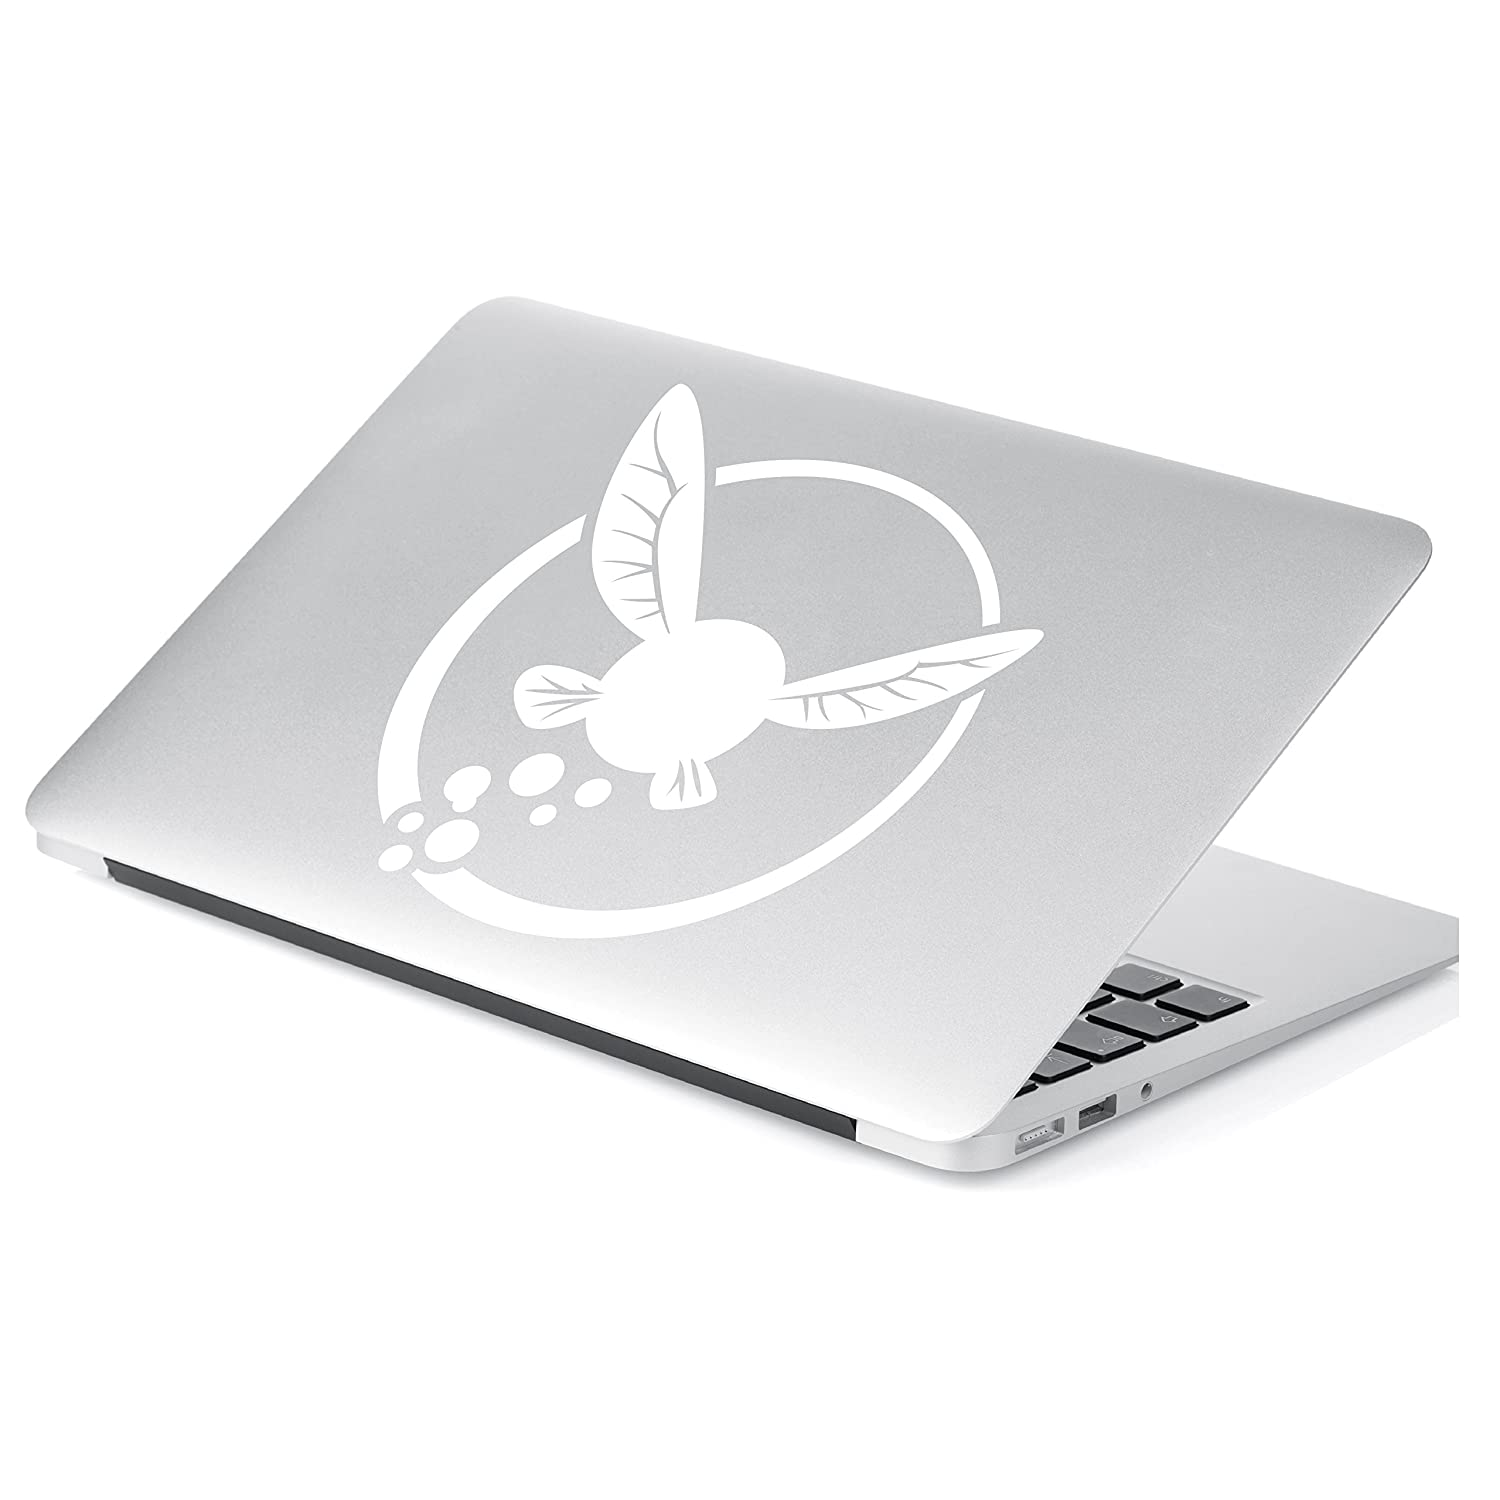 Yoonek Graphics Zelda Navi Vinyl Decal Sticker # 834 6 x 5.6, White